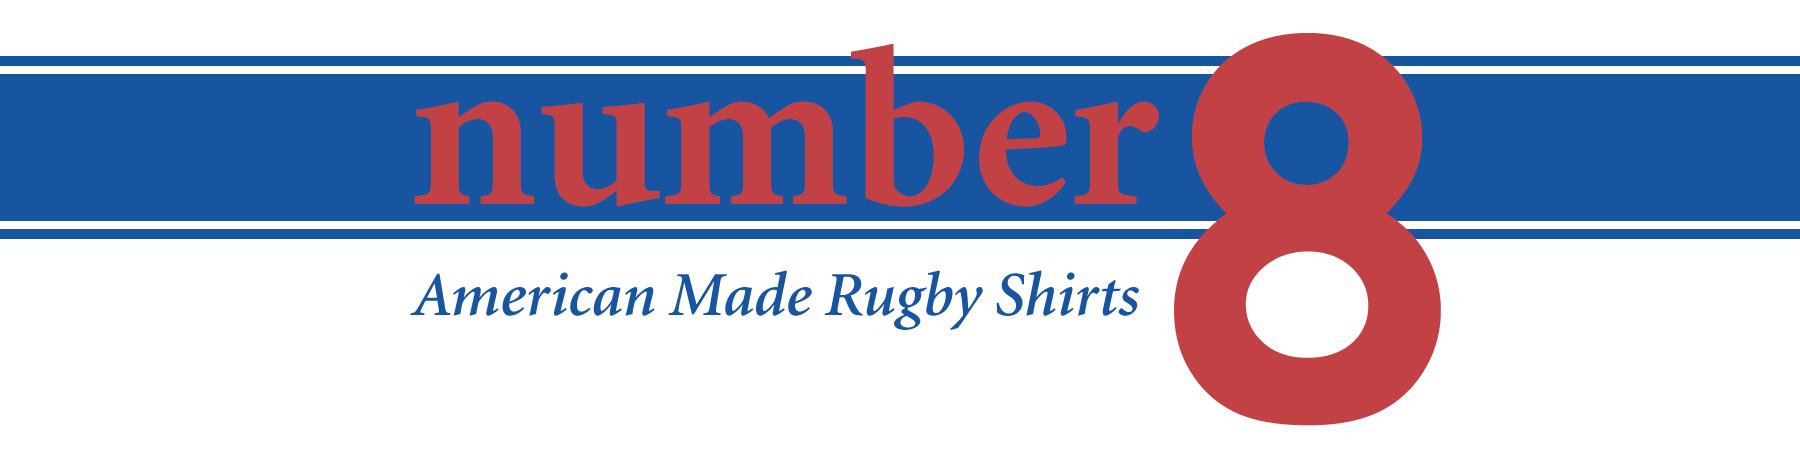 number 8 rugby shirts